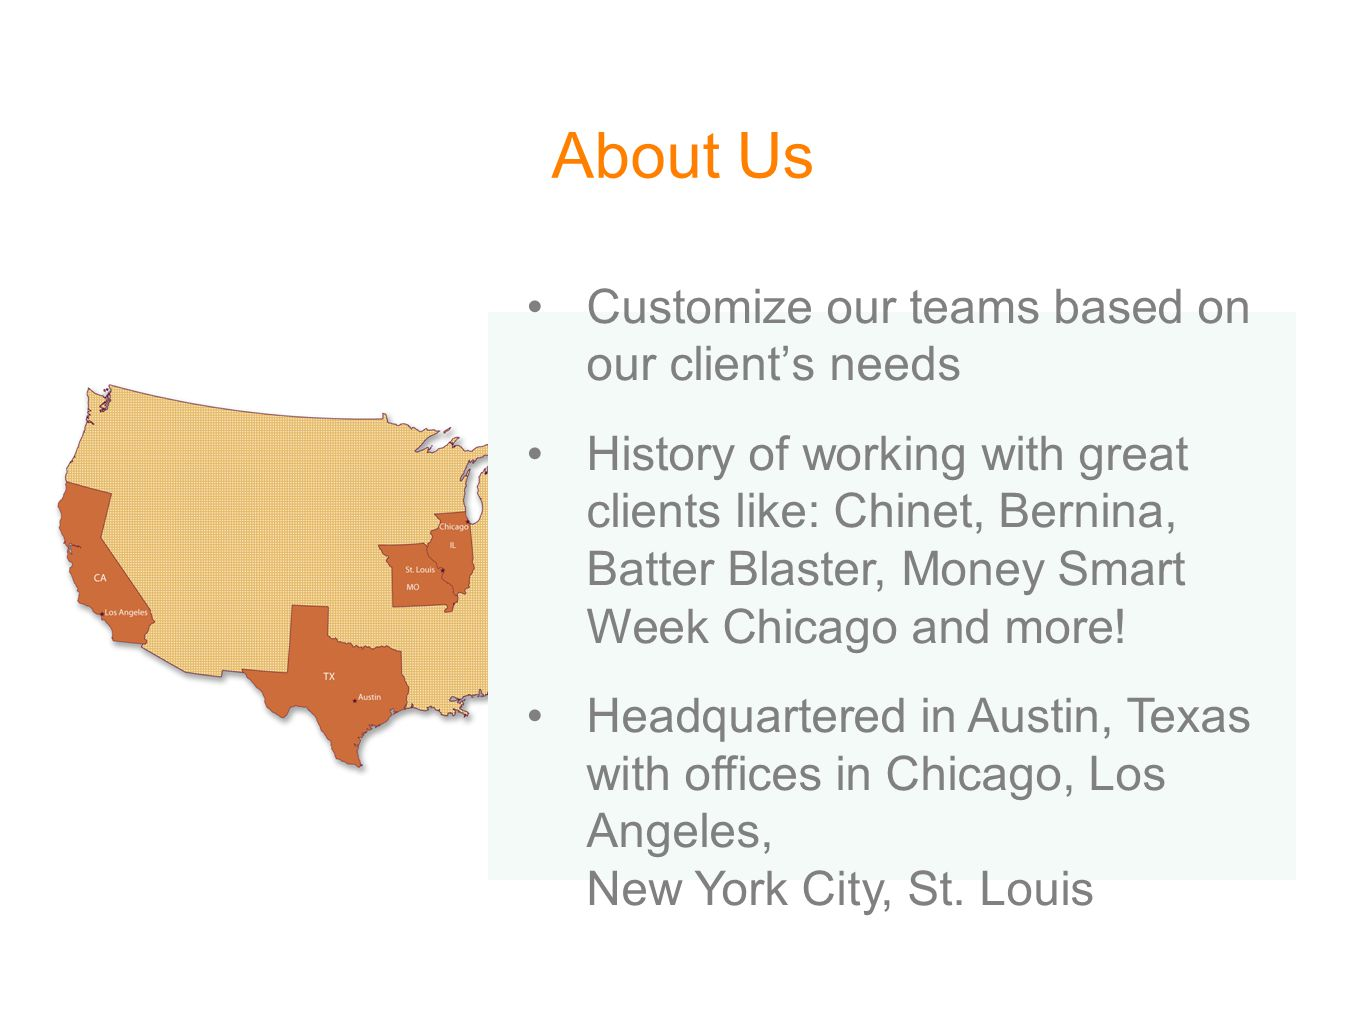 About Us Customize our teams based on our client's needs History of working with great clients like: Chinet, Bernina, Batter Blaster, Money Smart Week